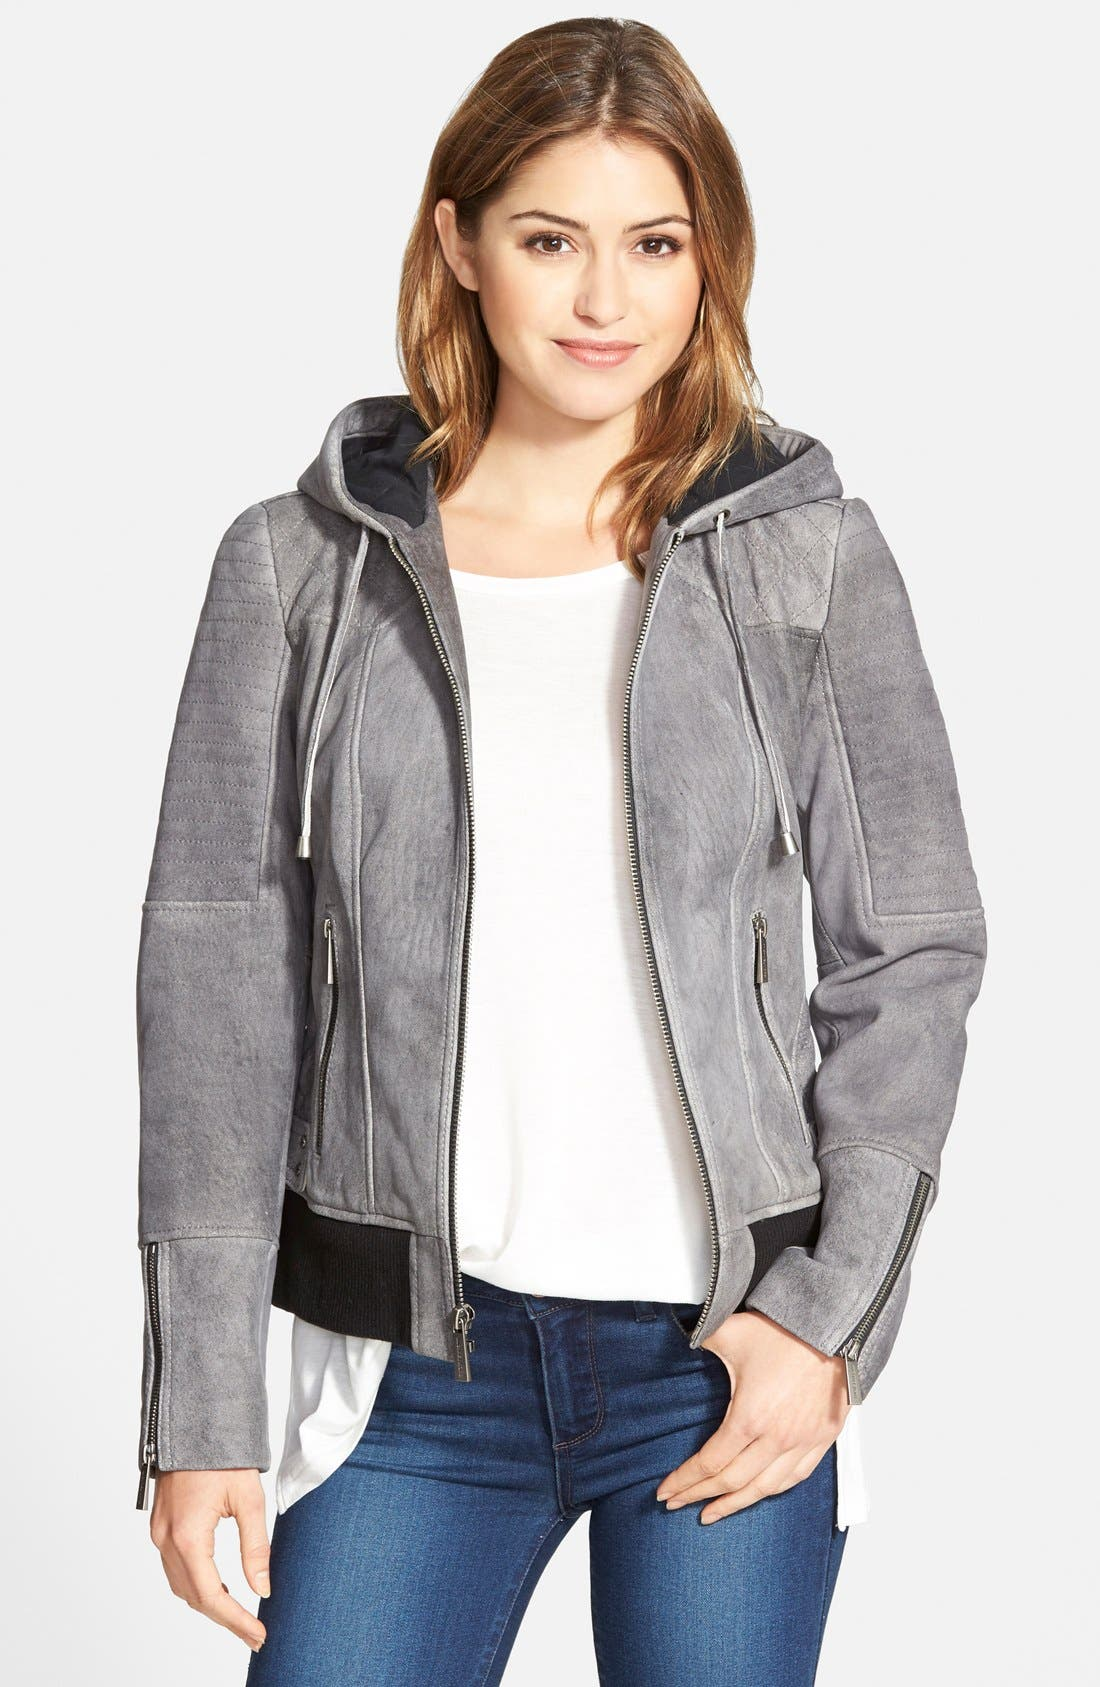 Alternate Image 1 Selected - MICHAEL Michael Kors Hooded Distressed Leather Bomber Jacket